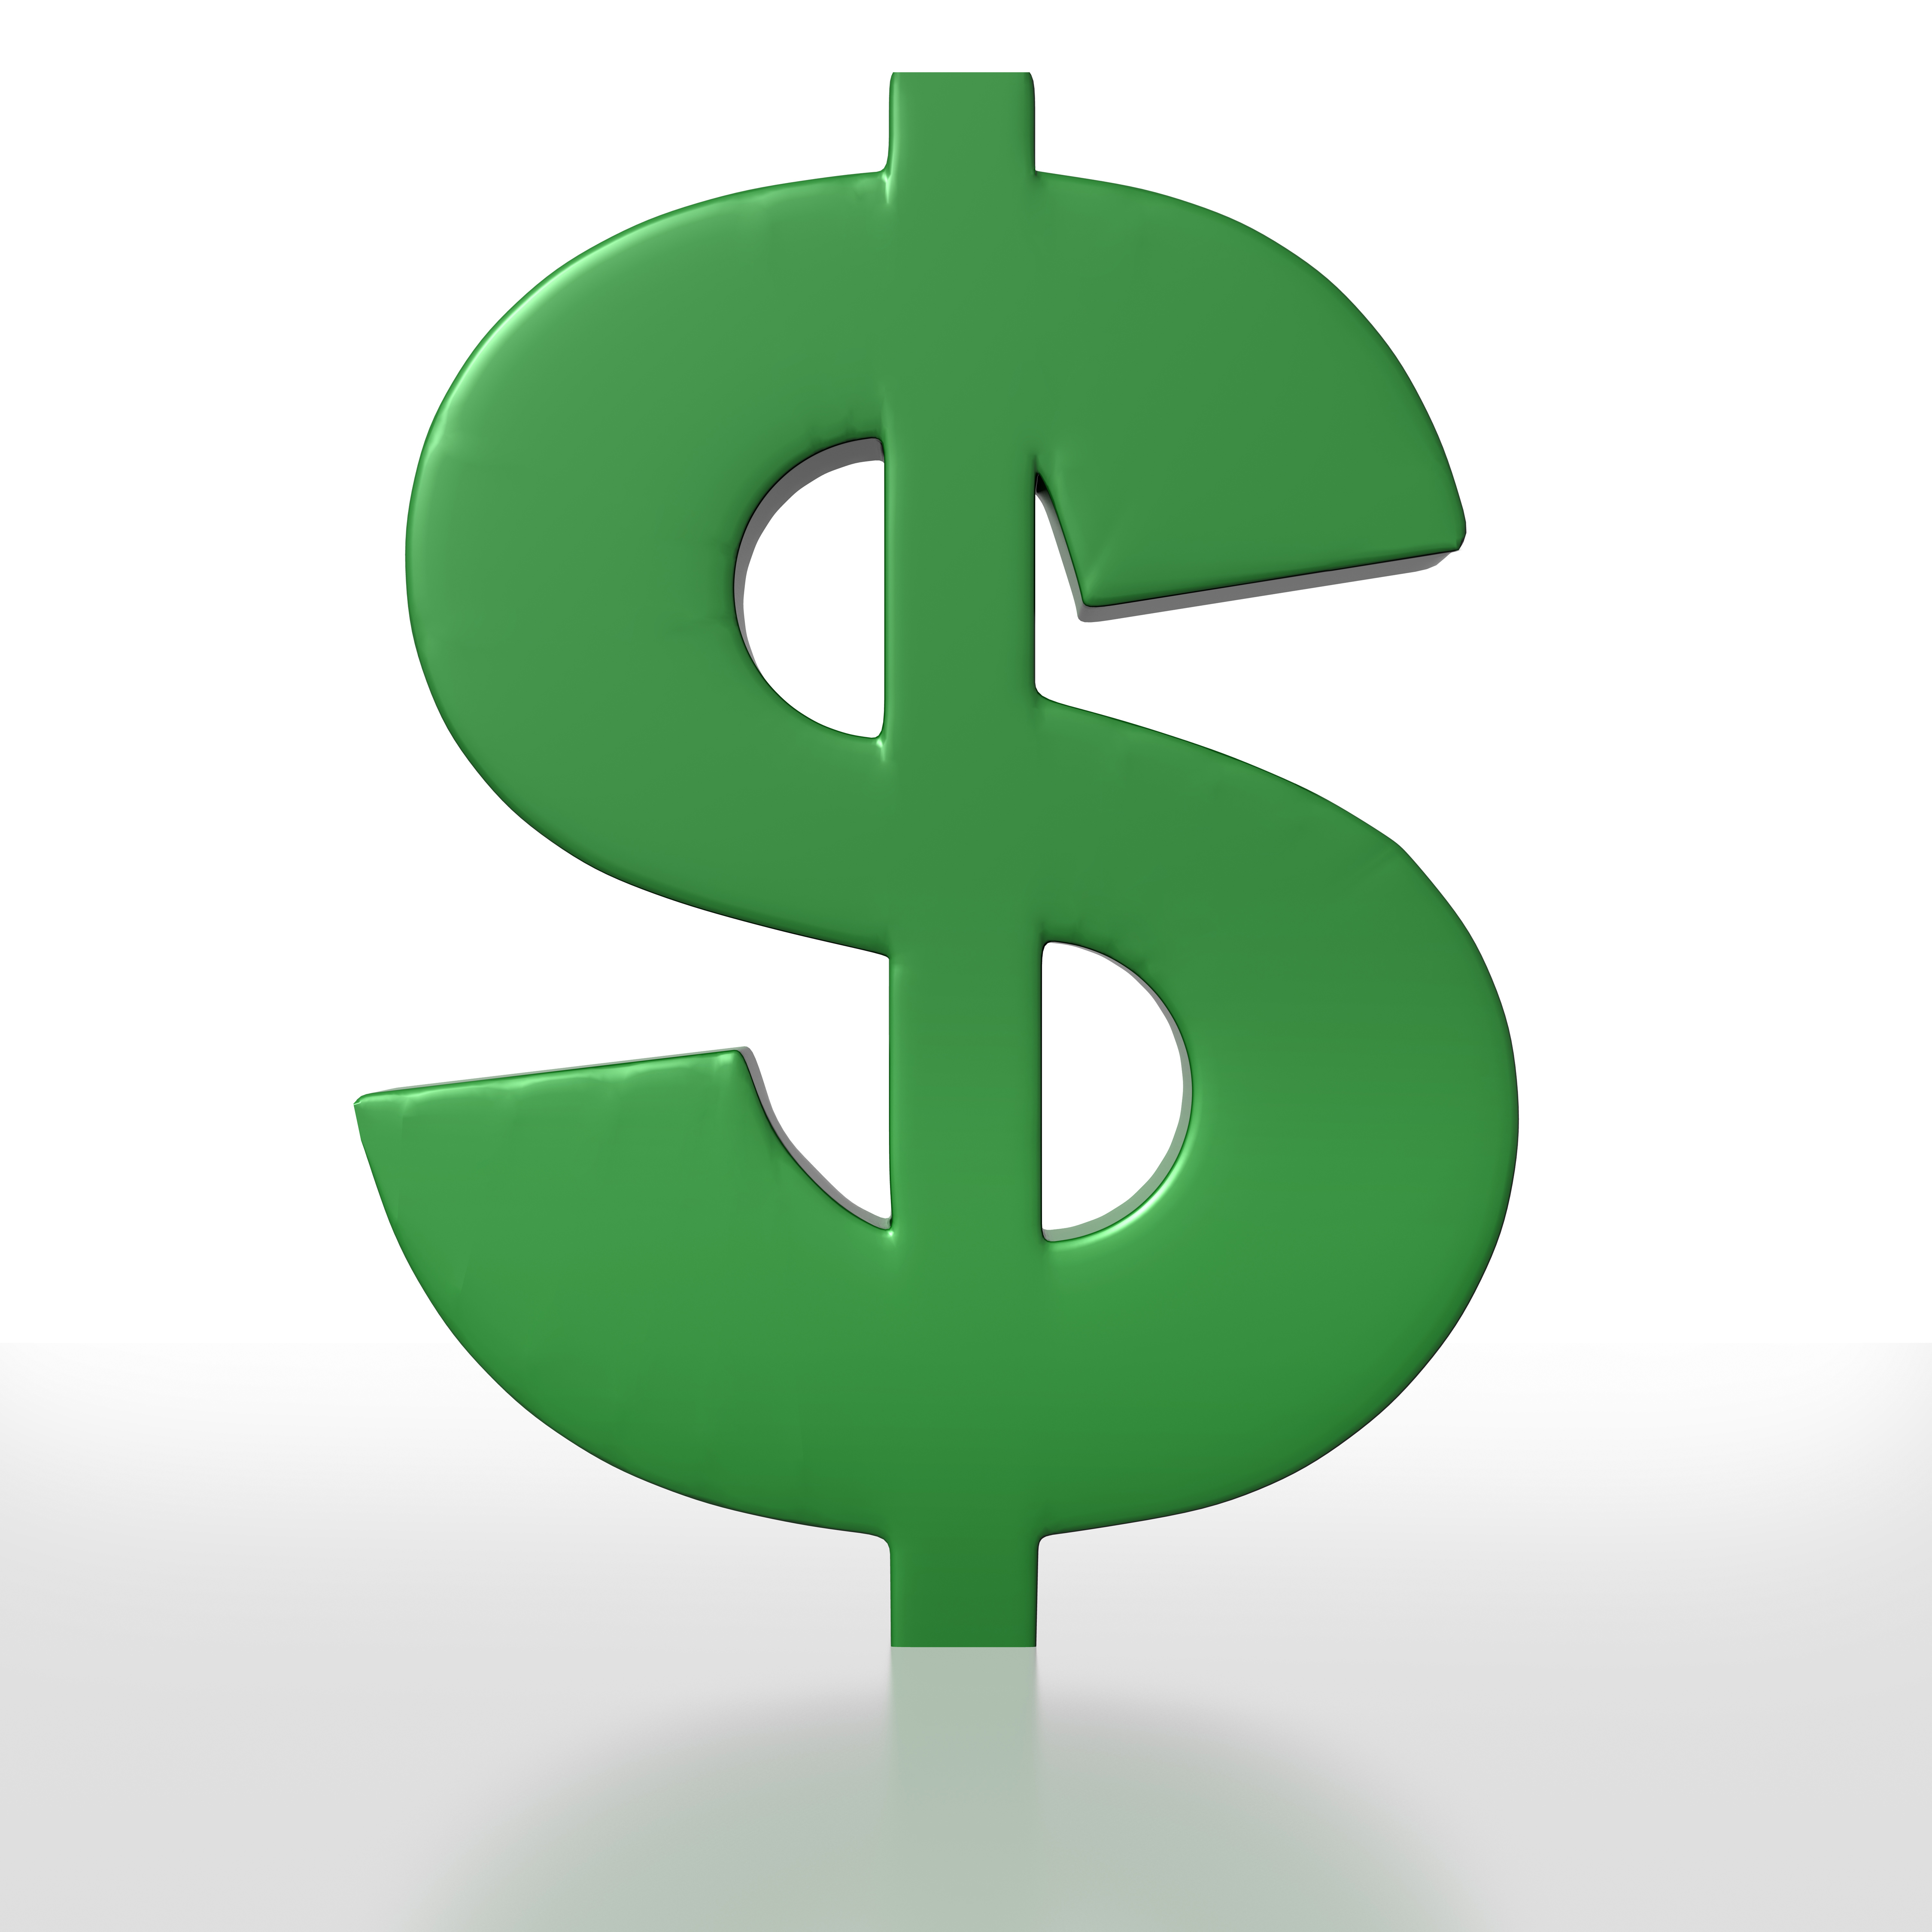 Free Dollar Sign Image, Download Free Clip Art, Free Clip.